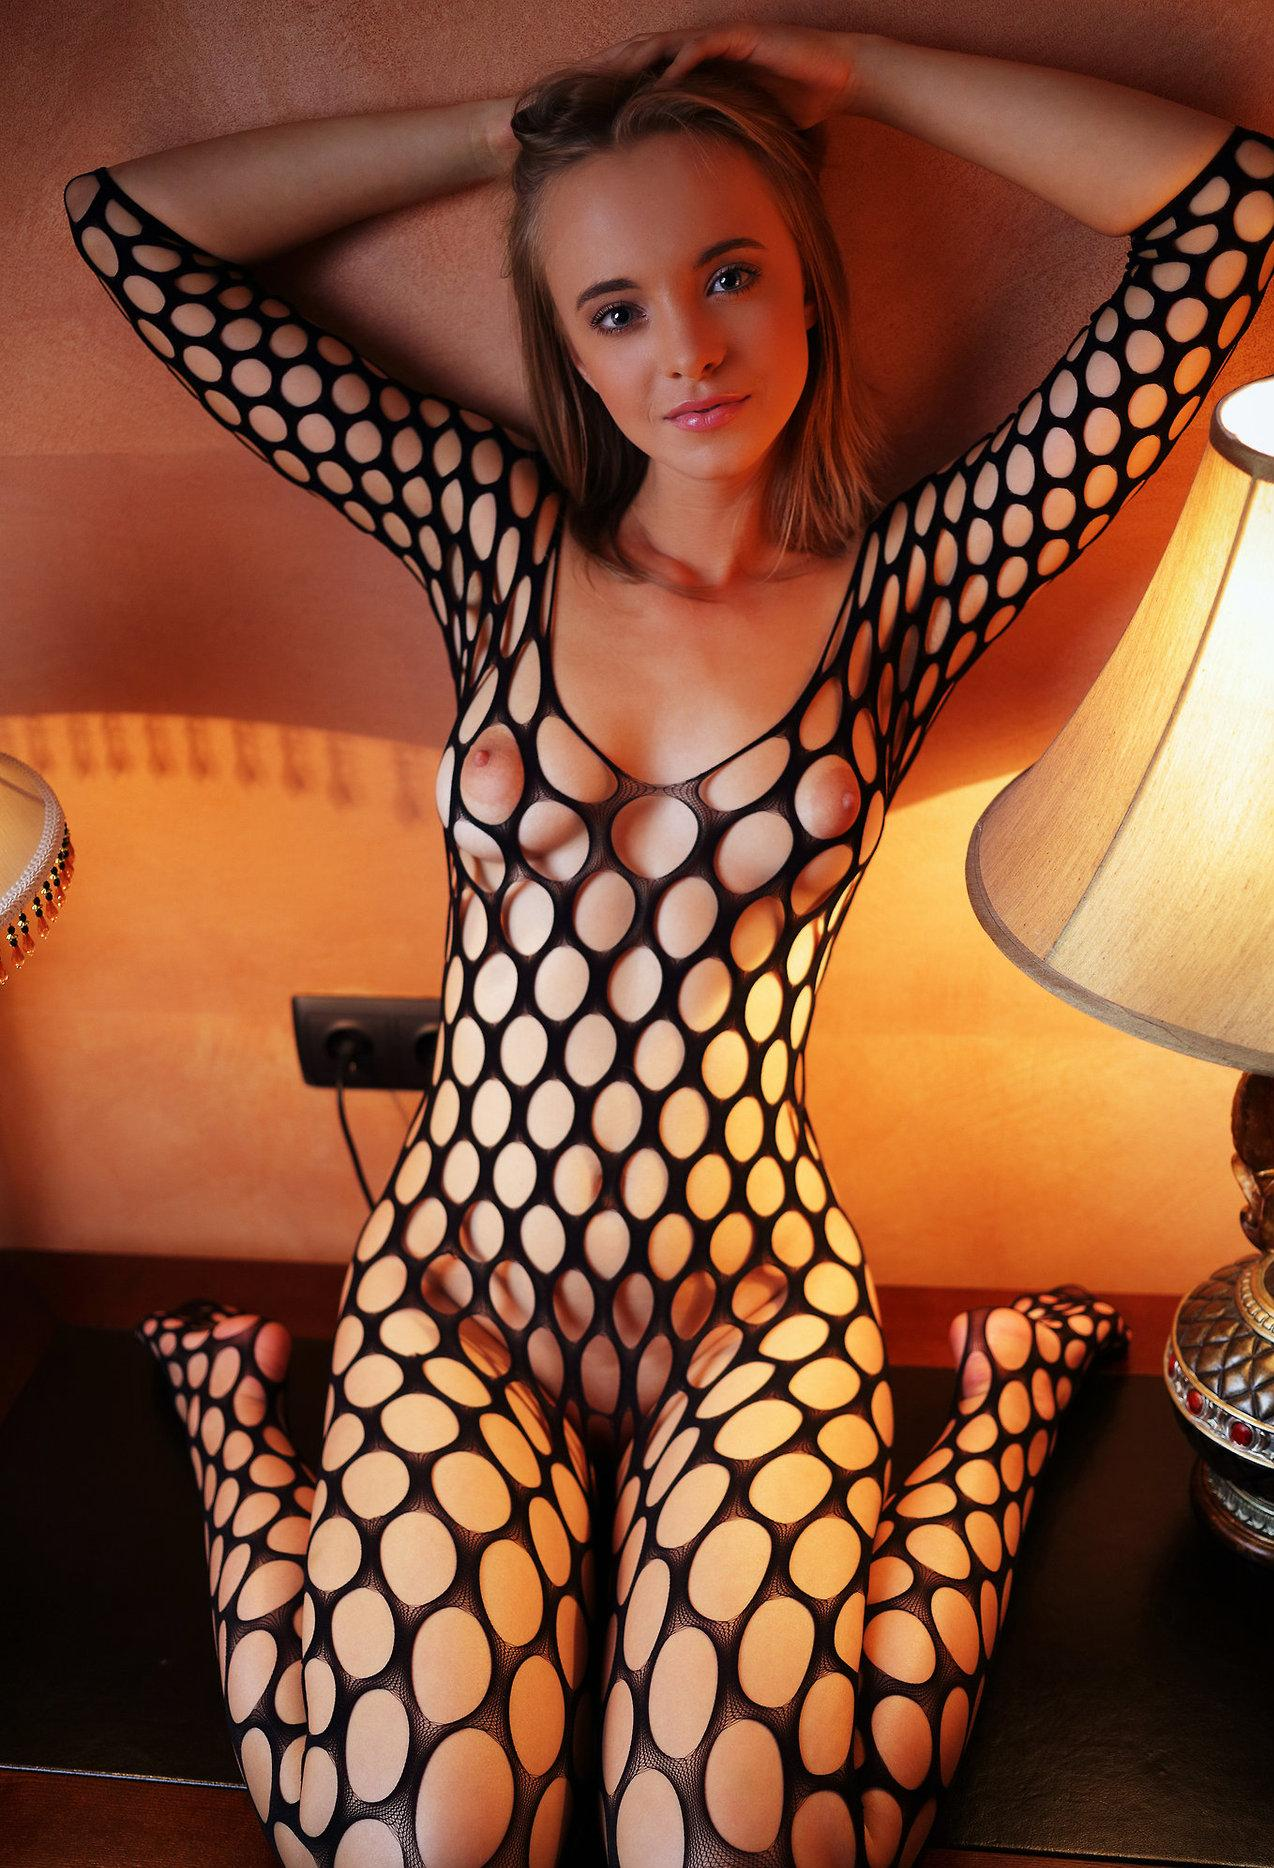 Fishnets babes pics, amateur young powered by vbulletin